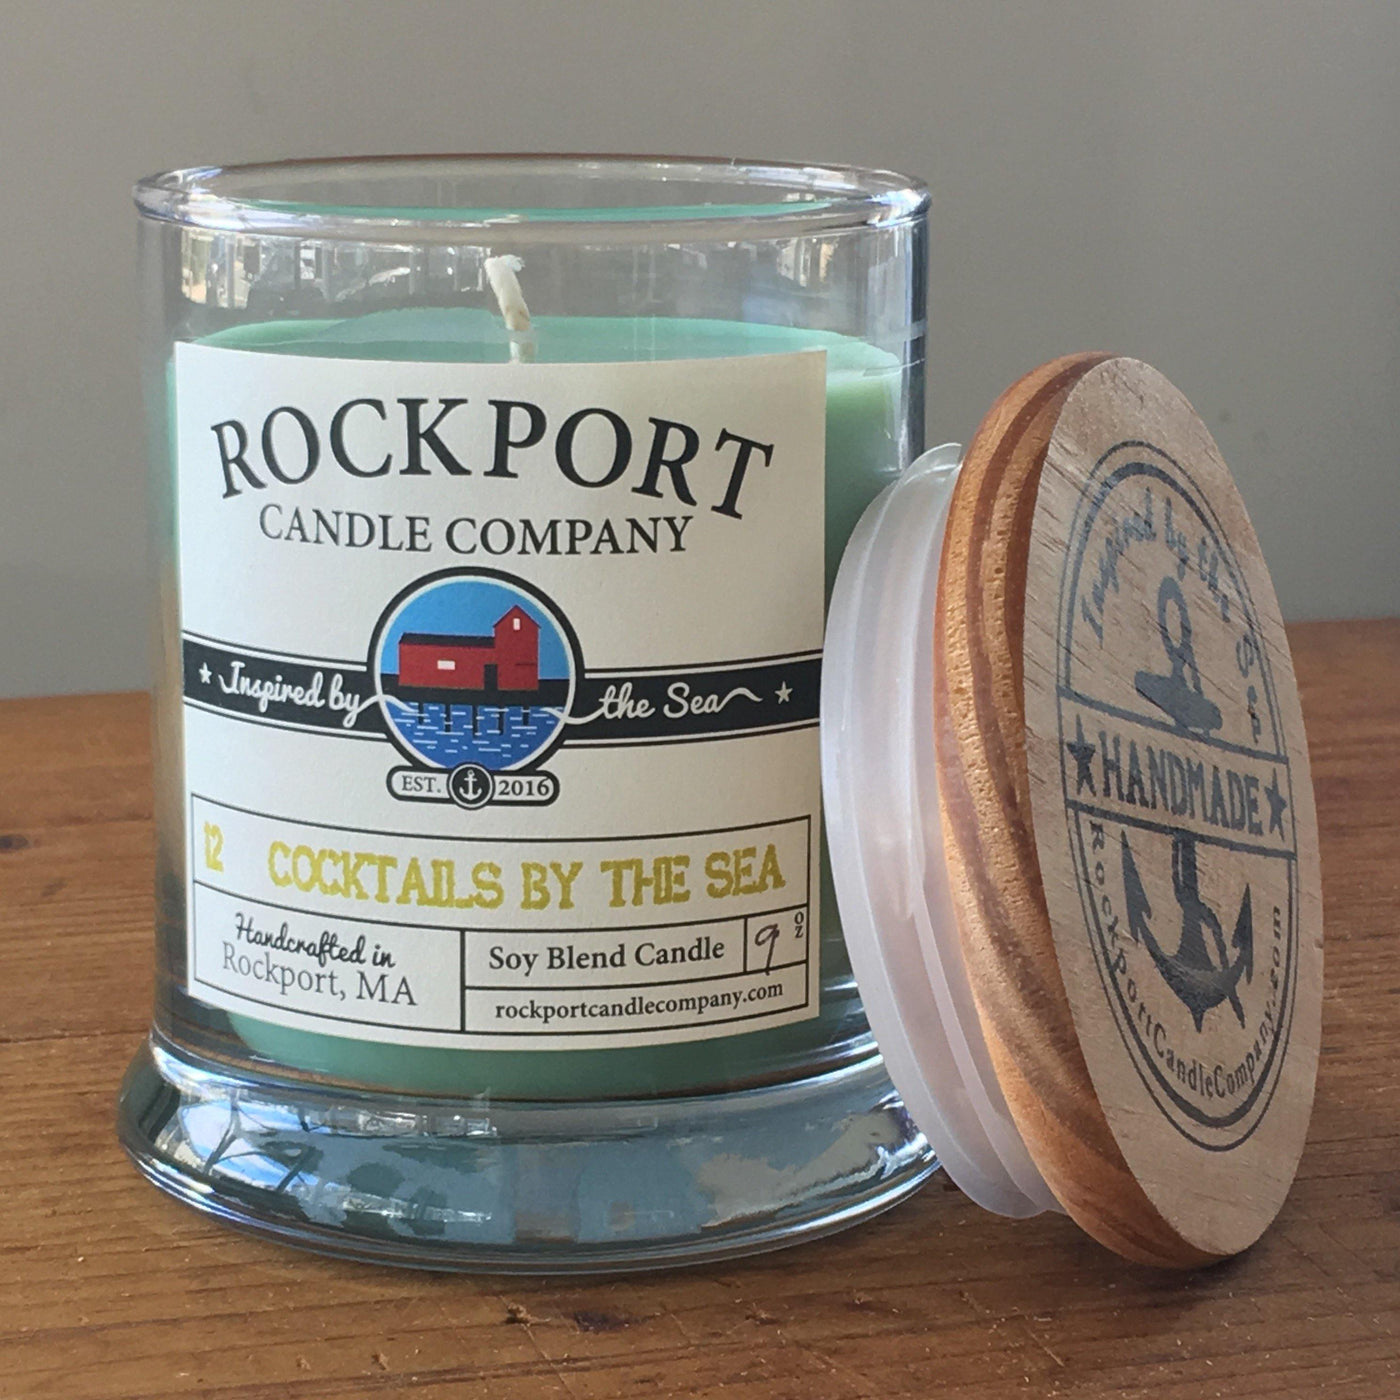 12 Cocktails by the Sea Candle Rockport Candle Company